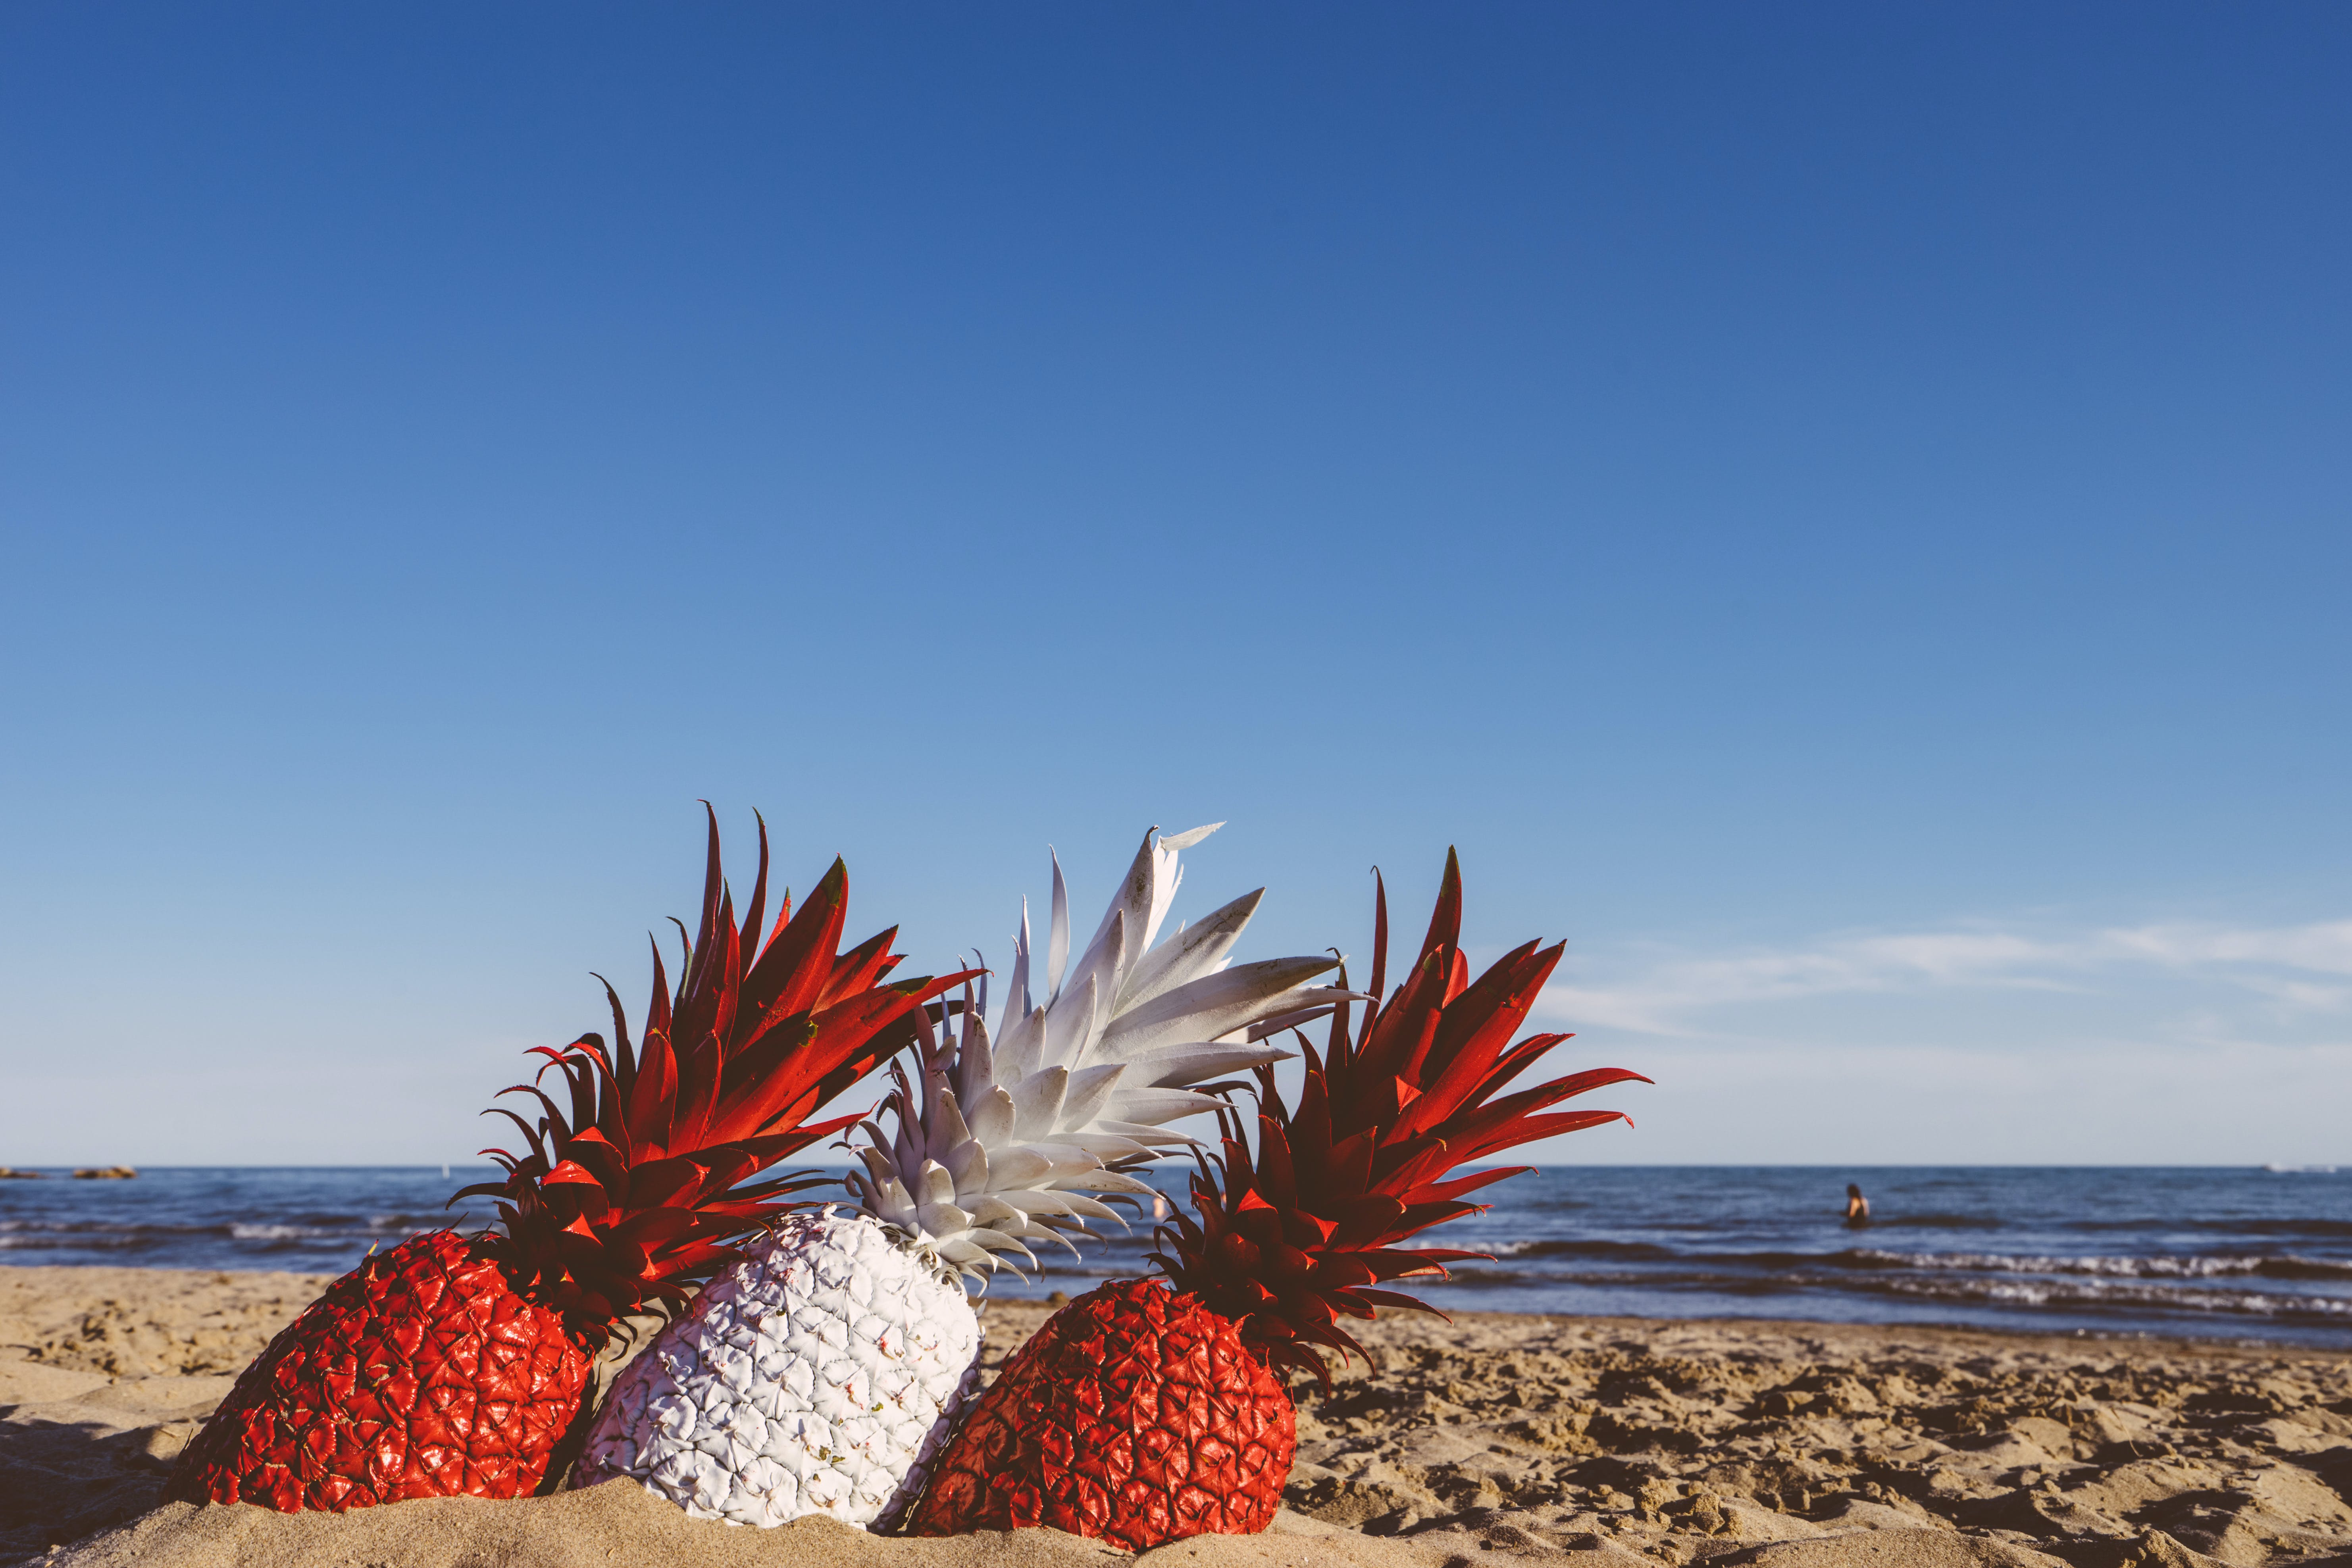 Three Red and White Pineapples on Sand